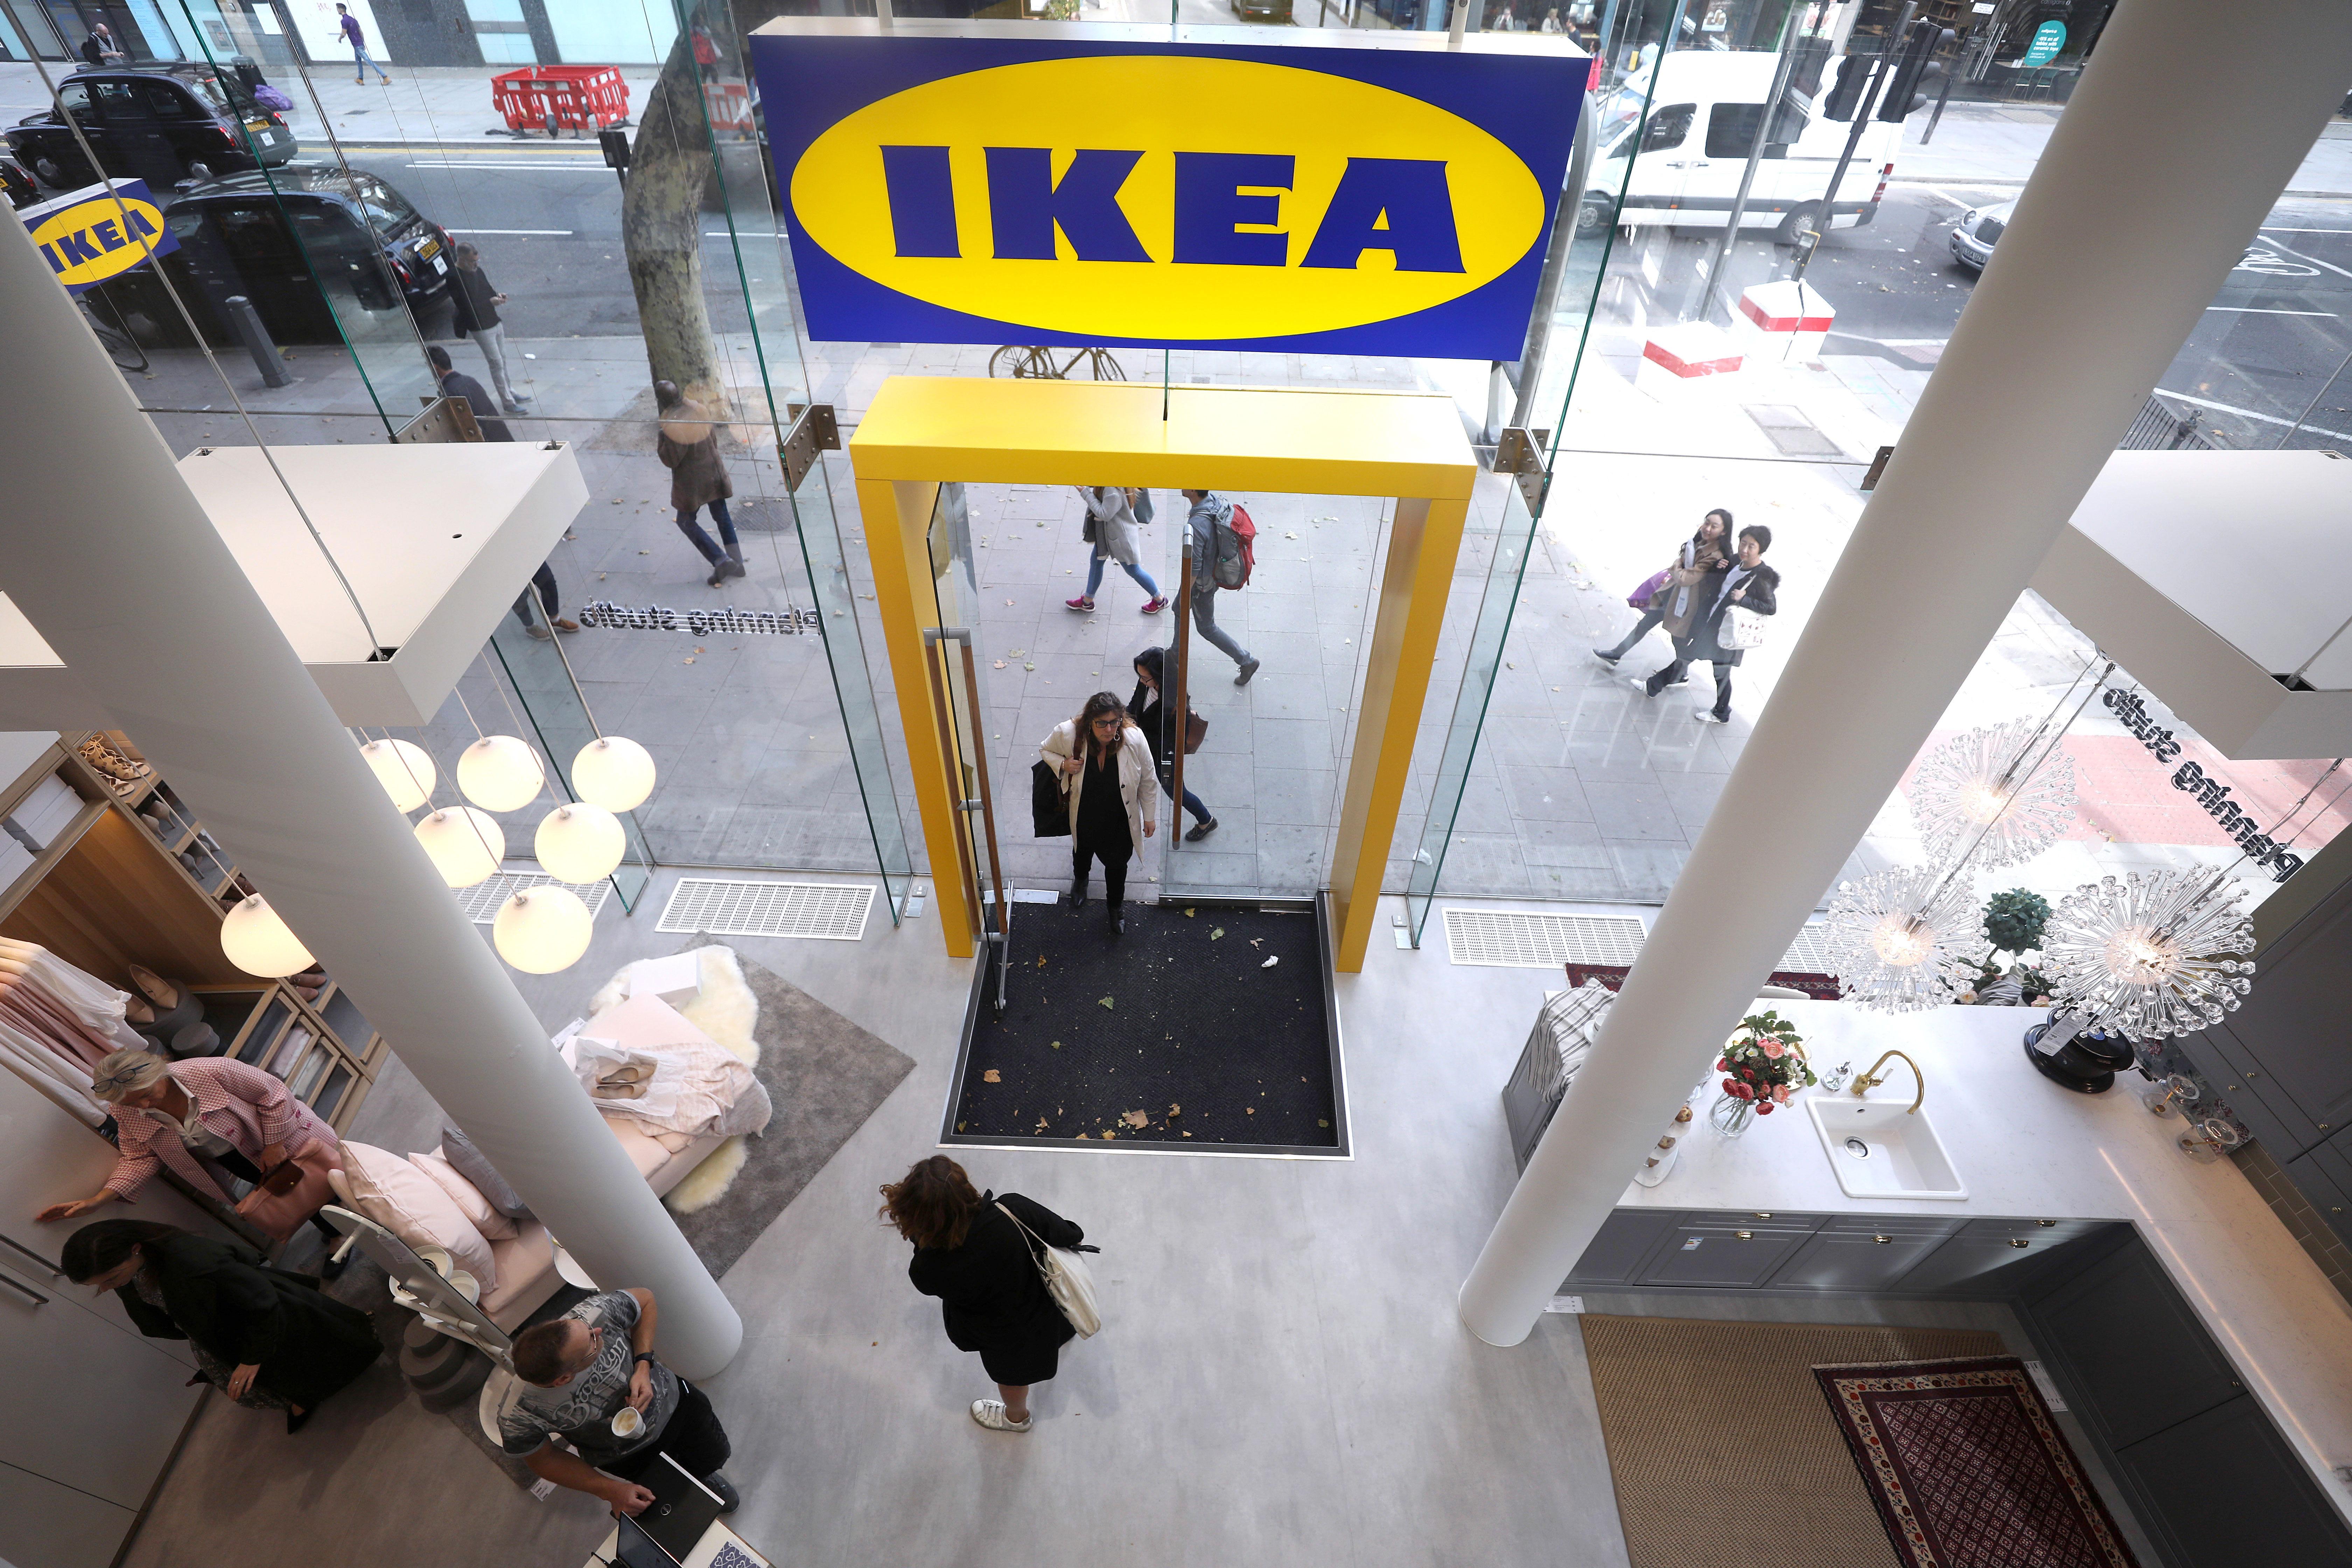 9b5af2a61 IKEA Is Hosting an All-You-Can-Eat Easter Buffet With Swedish Meatballs